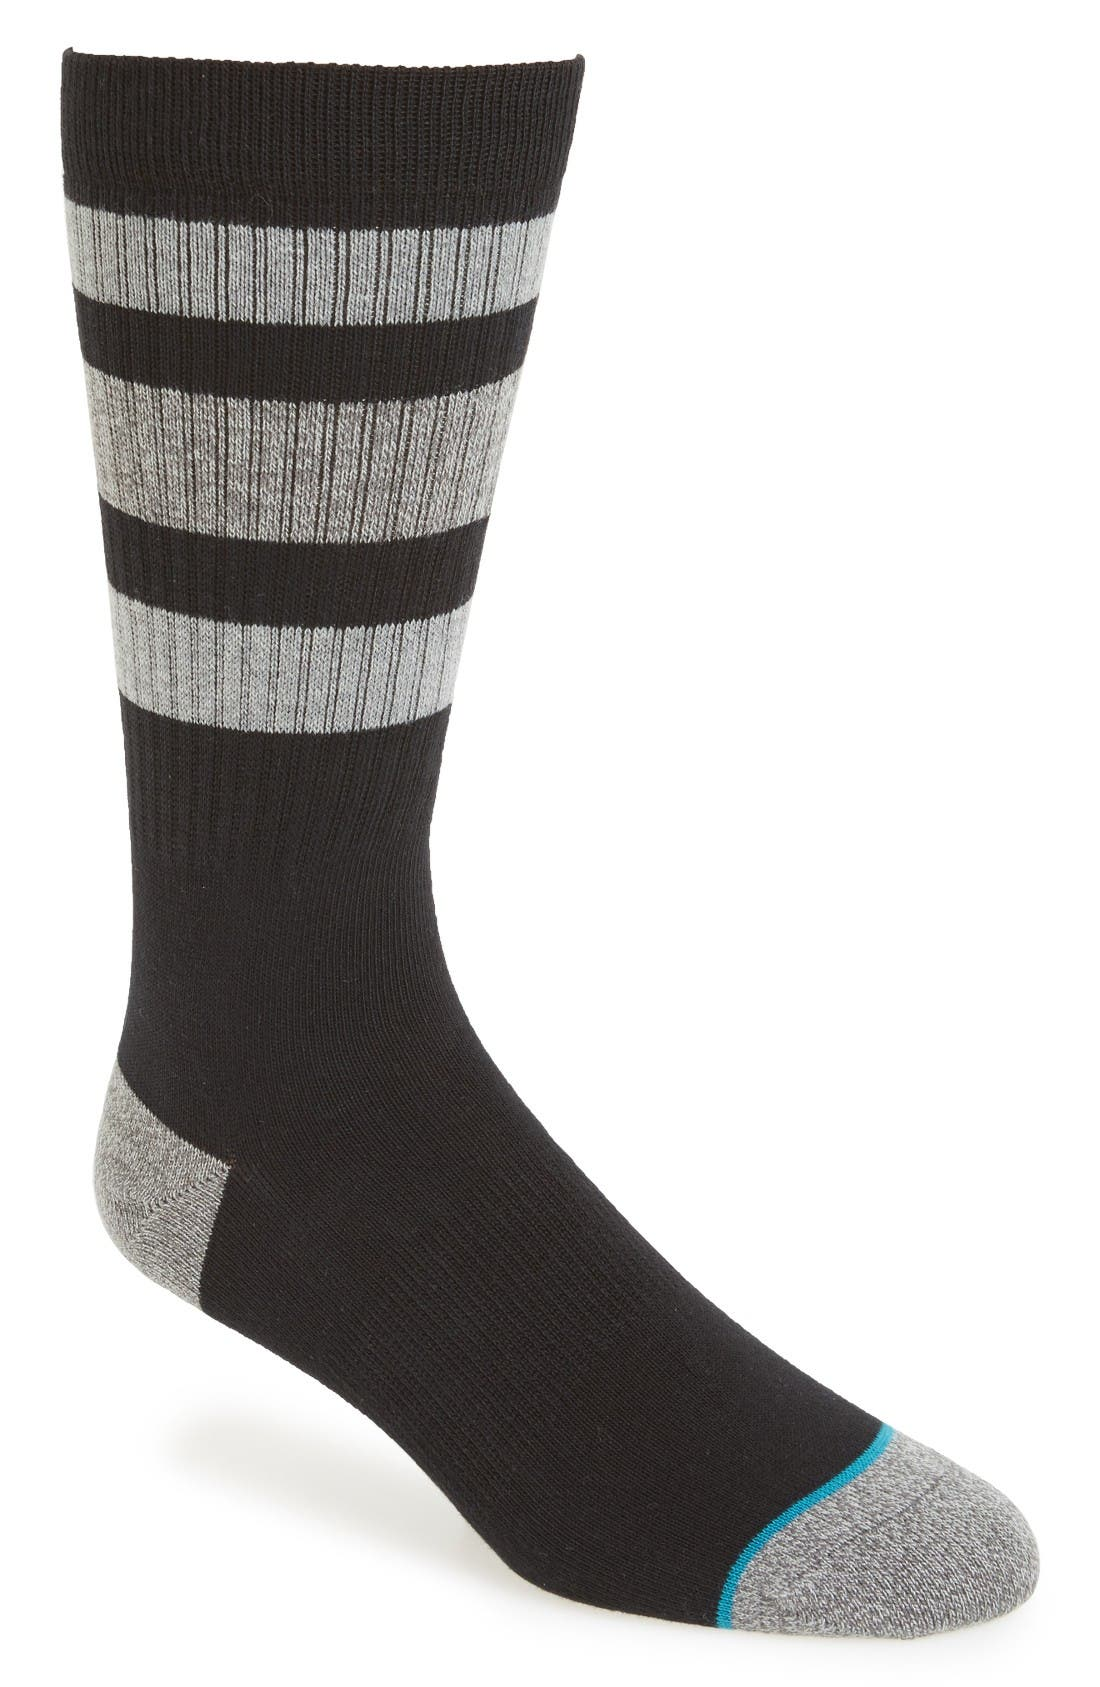 Men's Patterned Socks | Nordstrom